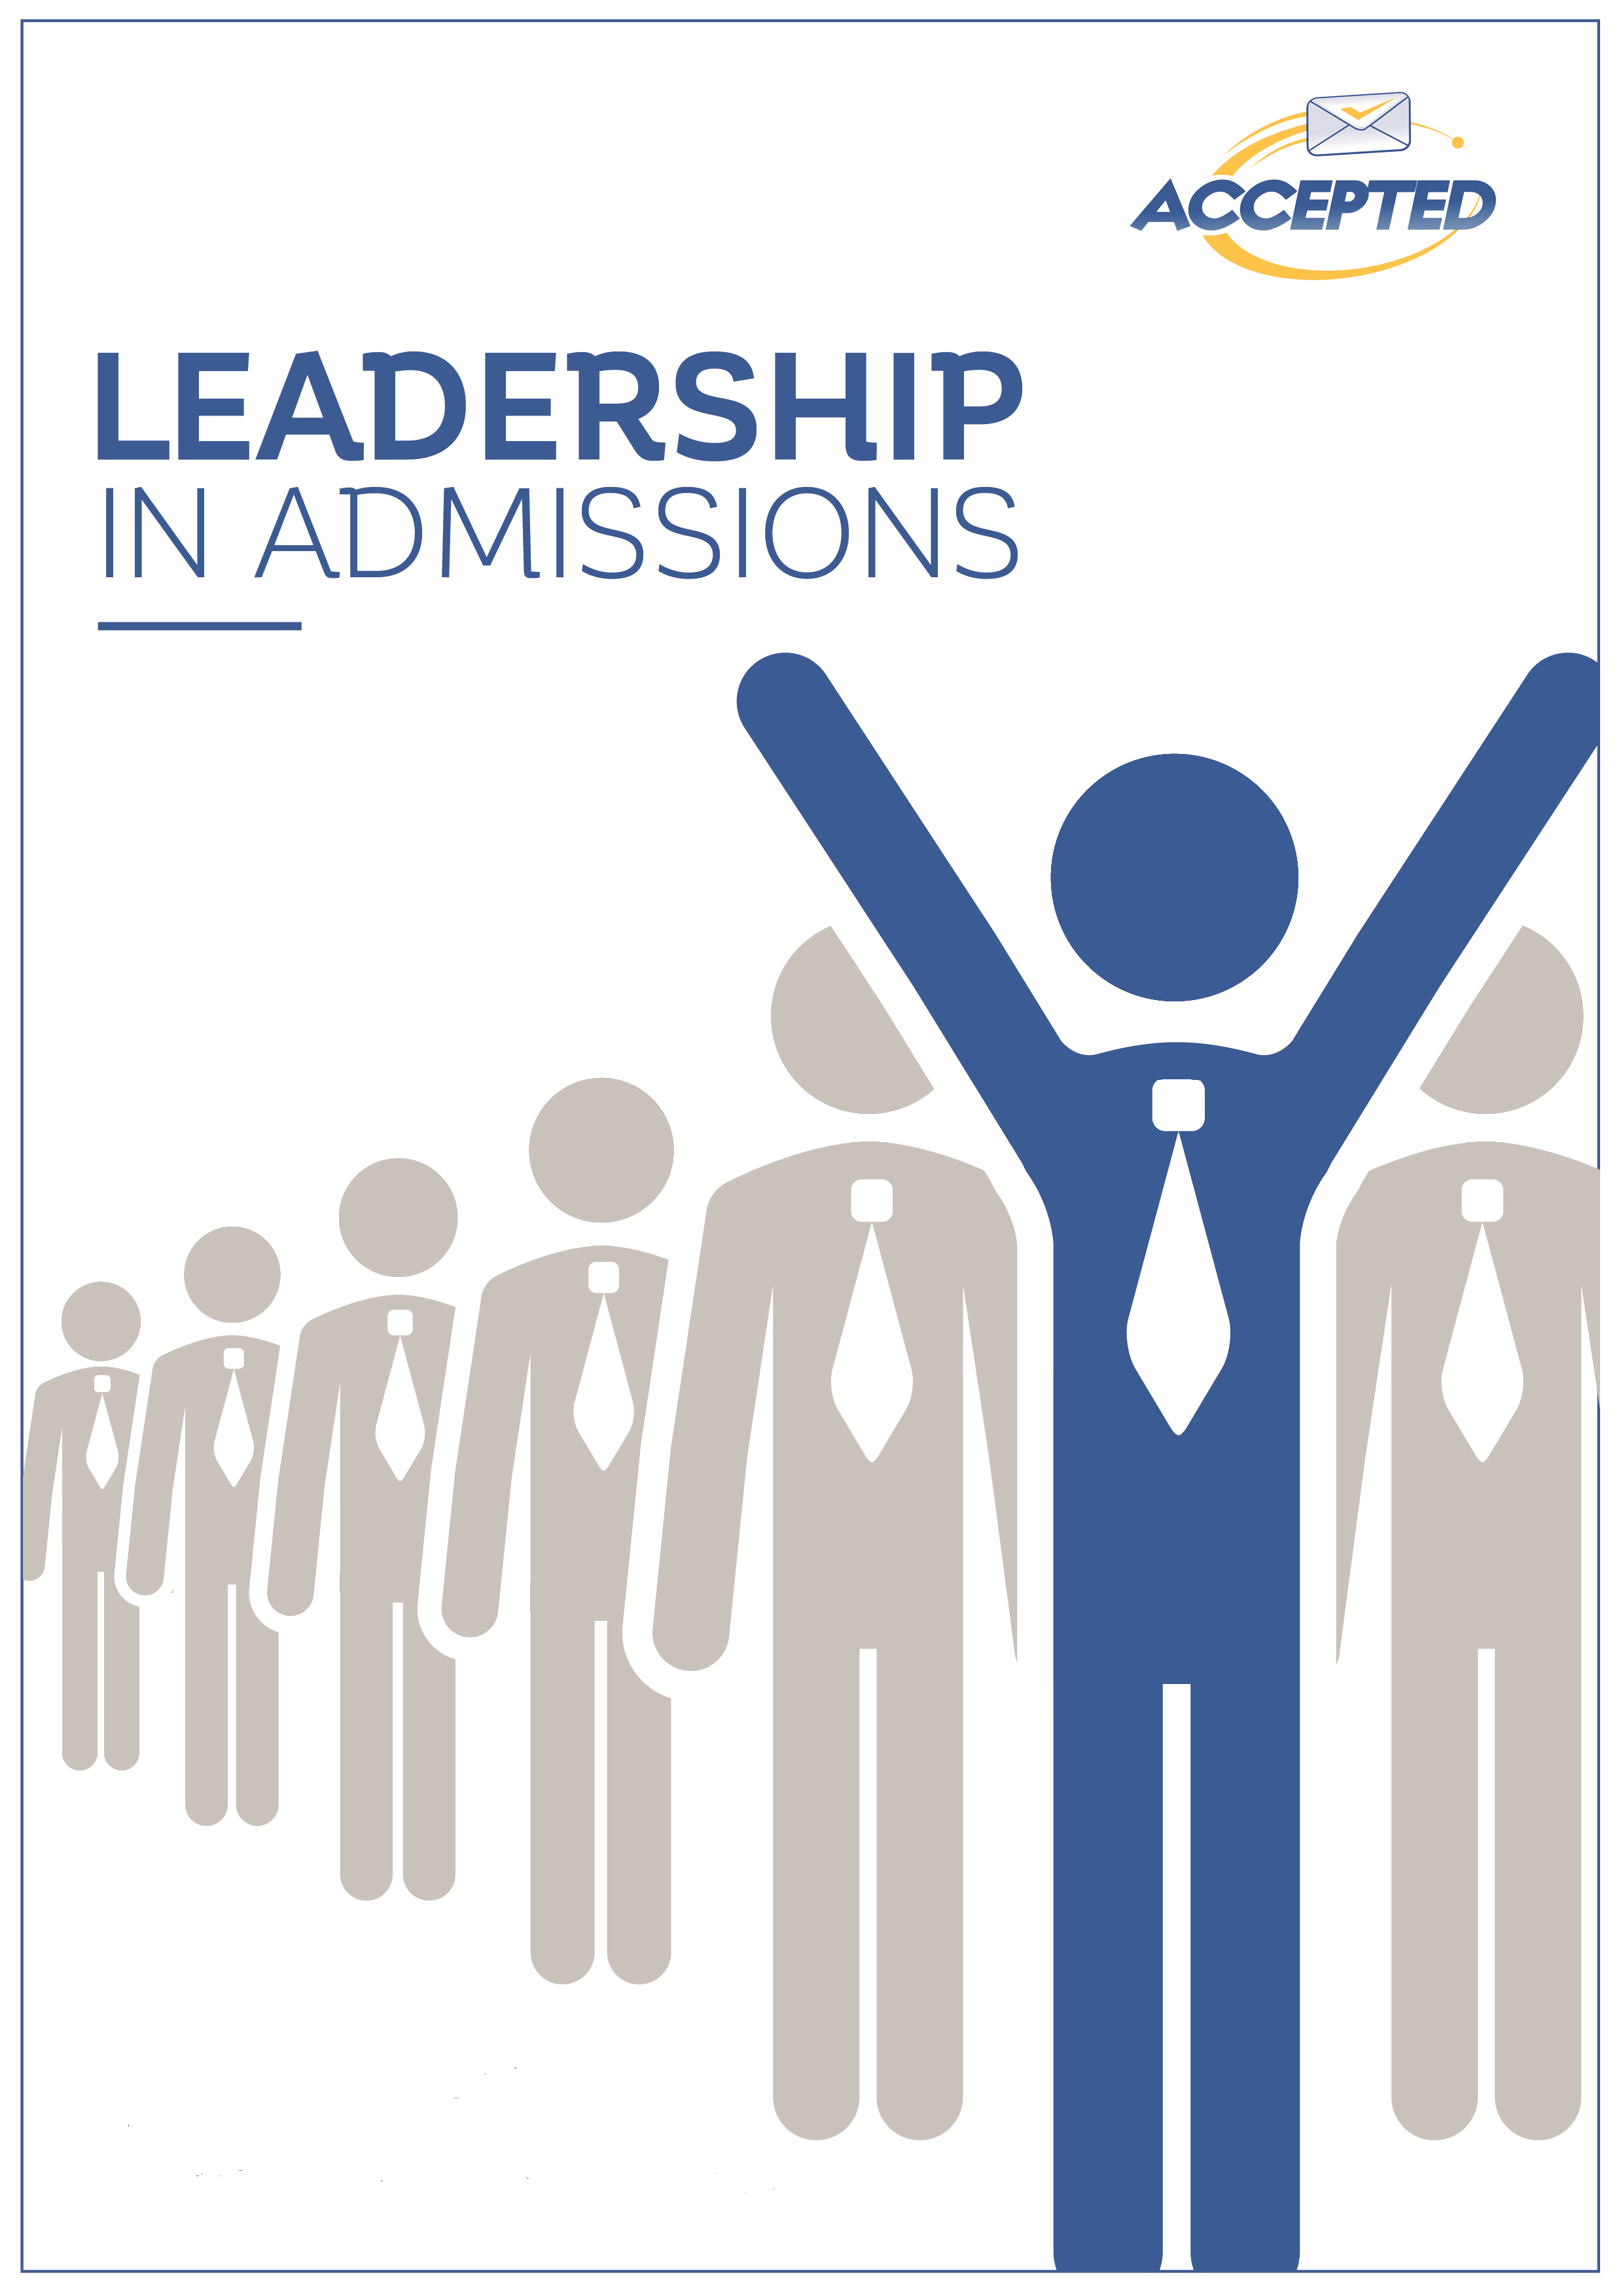 Leadership_in_admissions-1.png